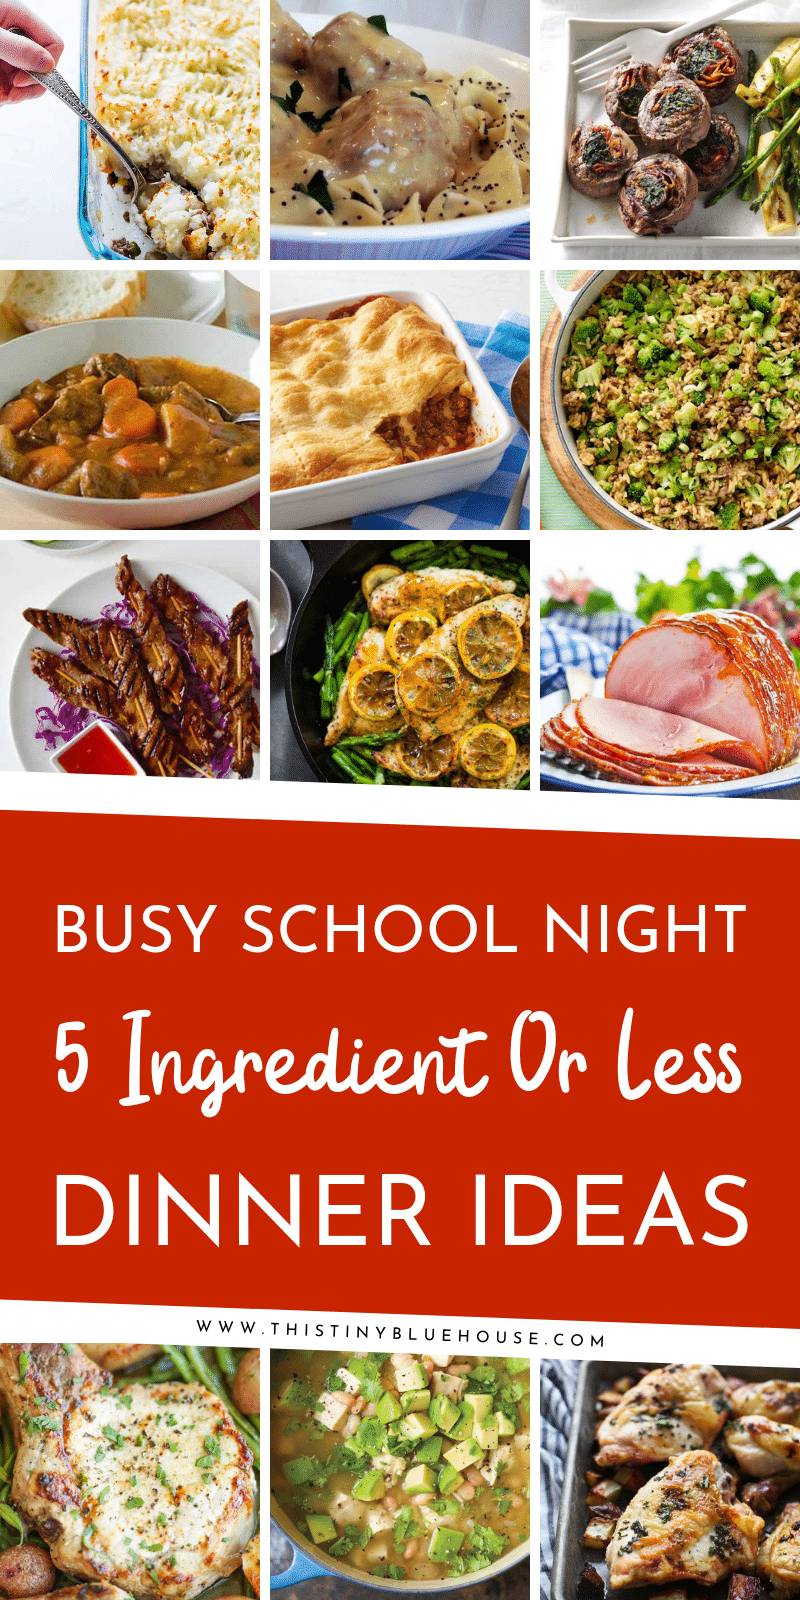 135 easy delicious 5 ingredient dinners split into chicken, beef, pork, fish & meatless categories. Simplify your meal plan with these easy meals. #easydinners #simplesupperrecipes #easyweeknightsuppers #5ingredientdinners #5ingredientsuppers #easyschoolnightdinners #easilyfamilydinnerideas